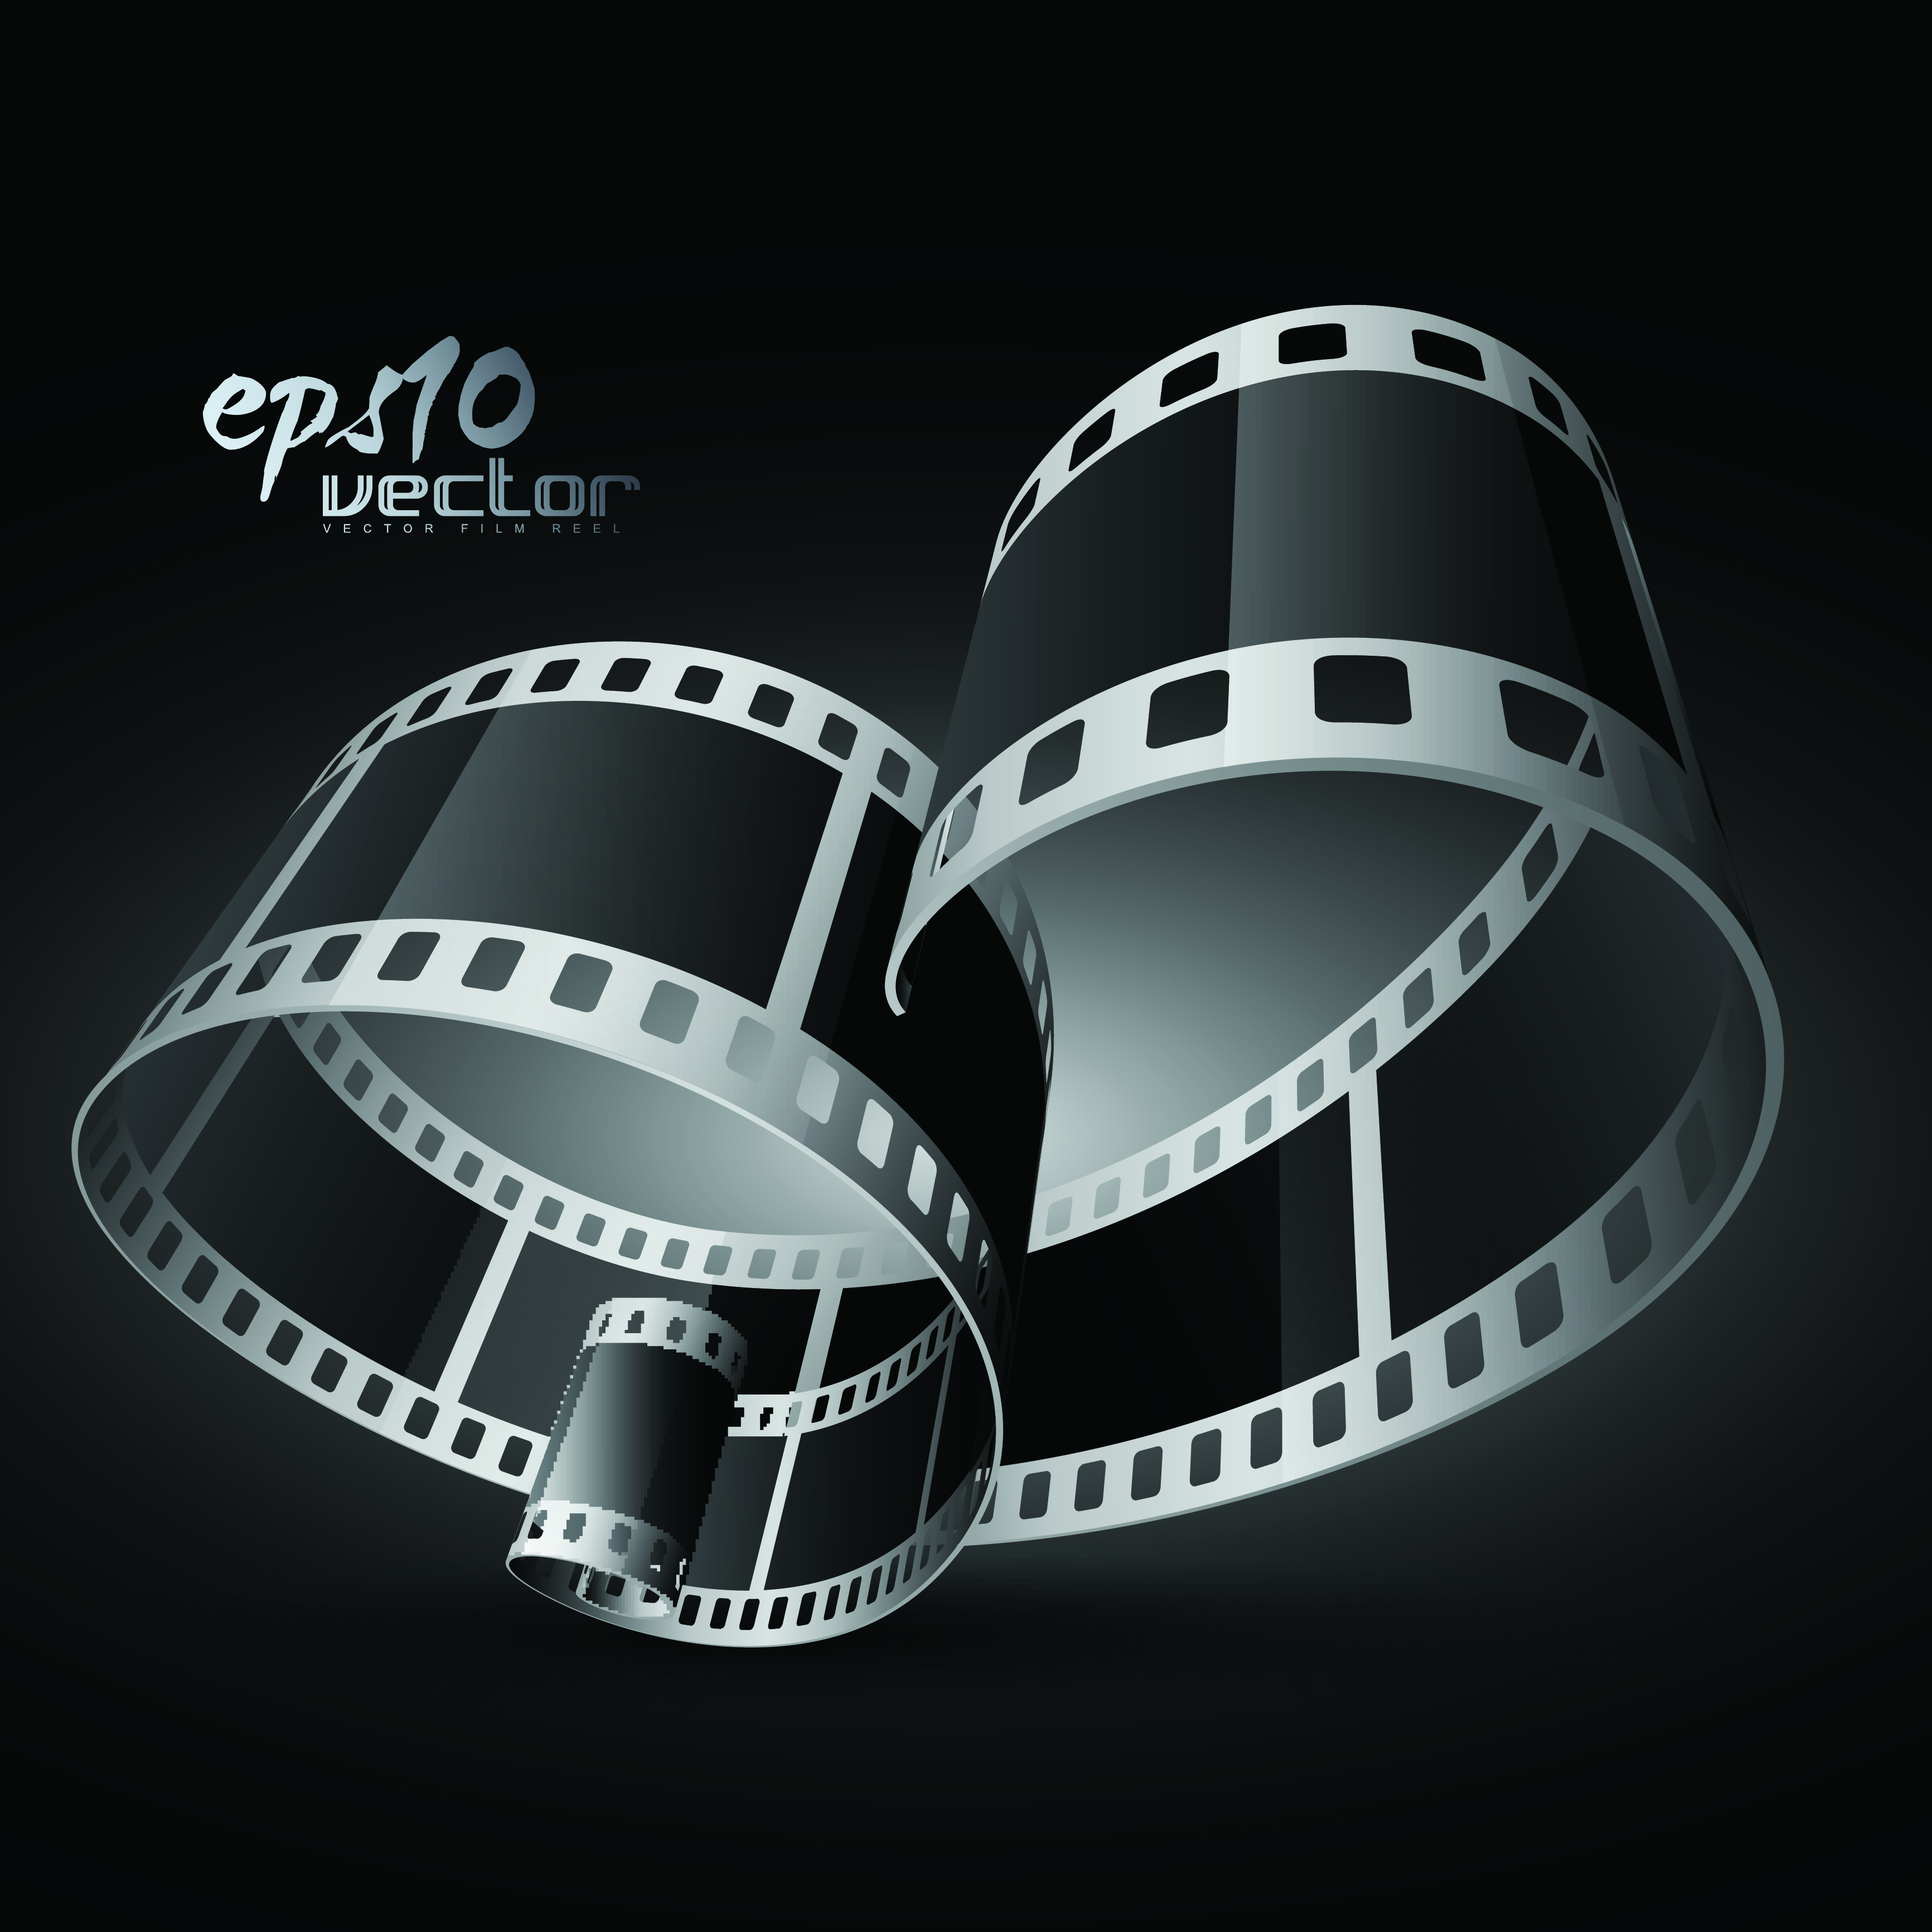 Black and white film clip art 3d 1 Free Vector / 4Vector.